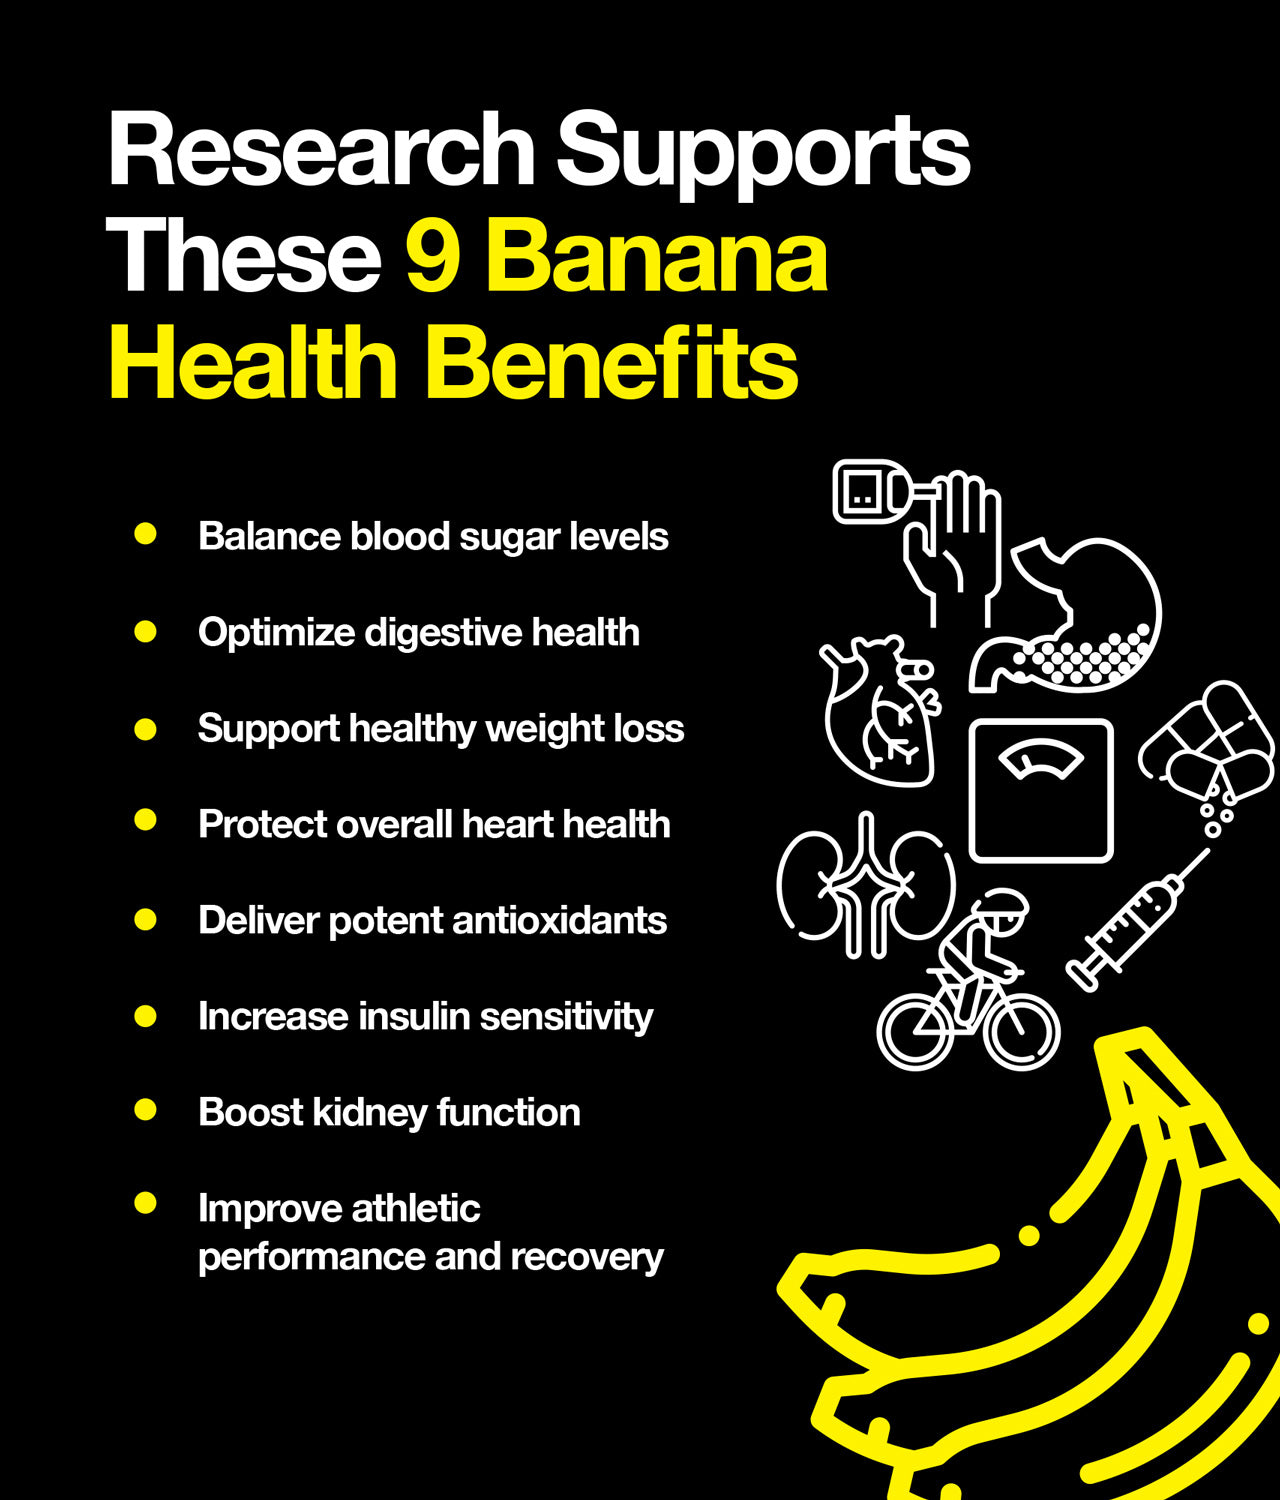 Research Supports These 9 Banana Health Benefits